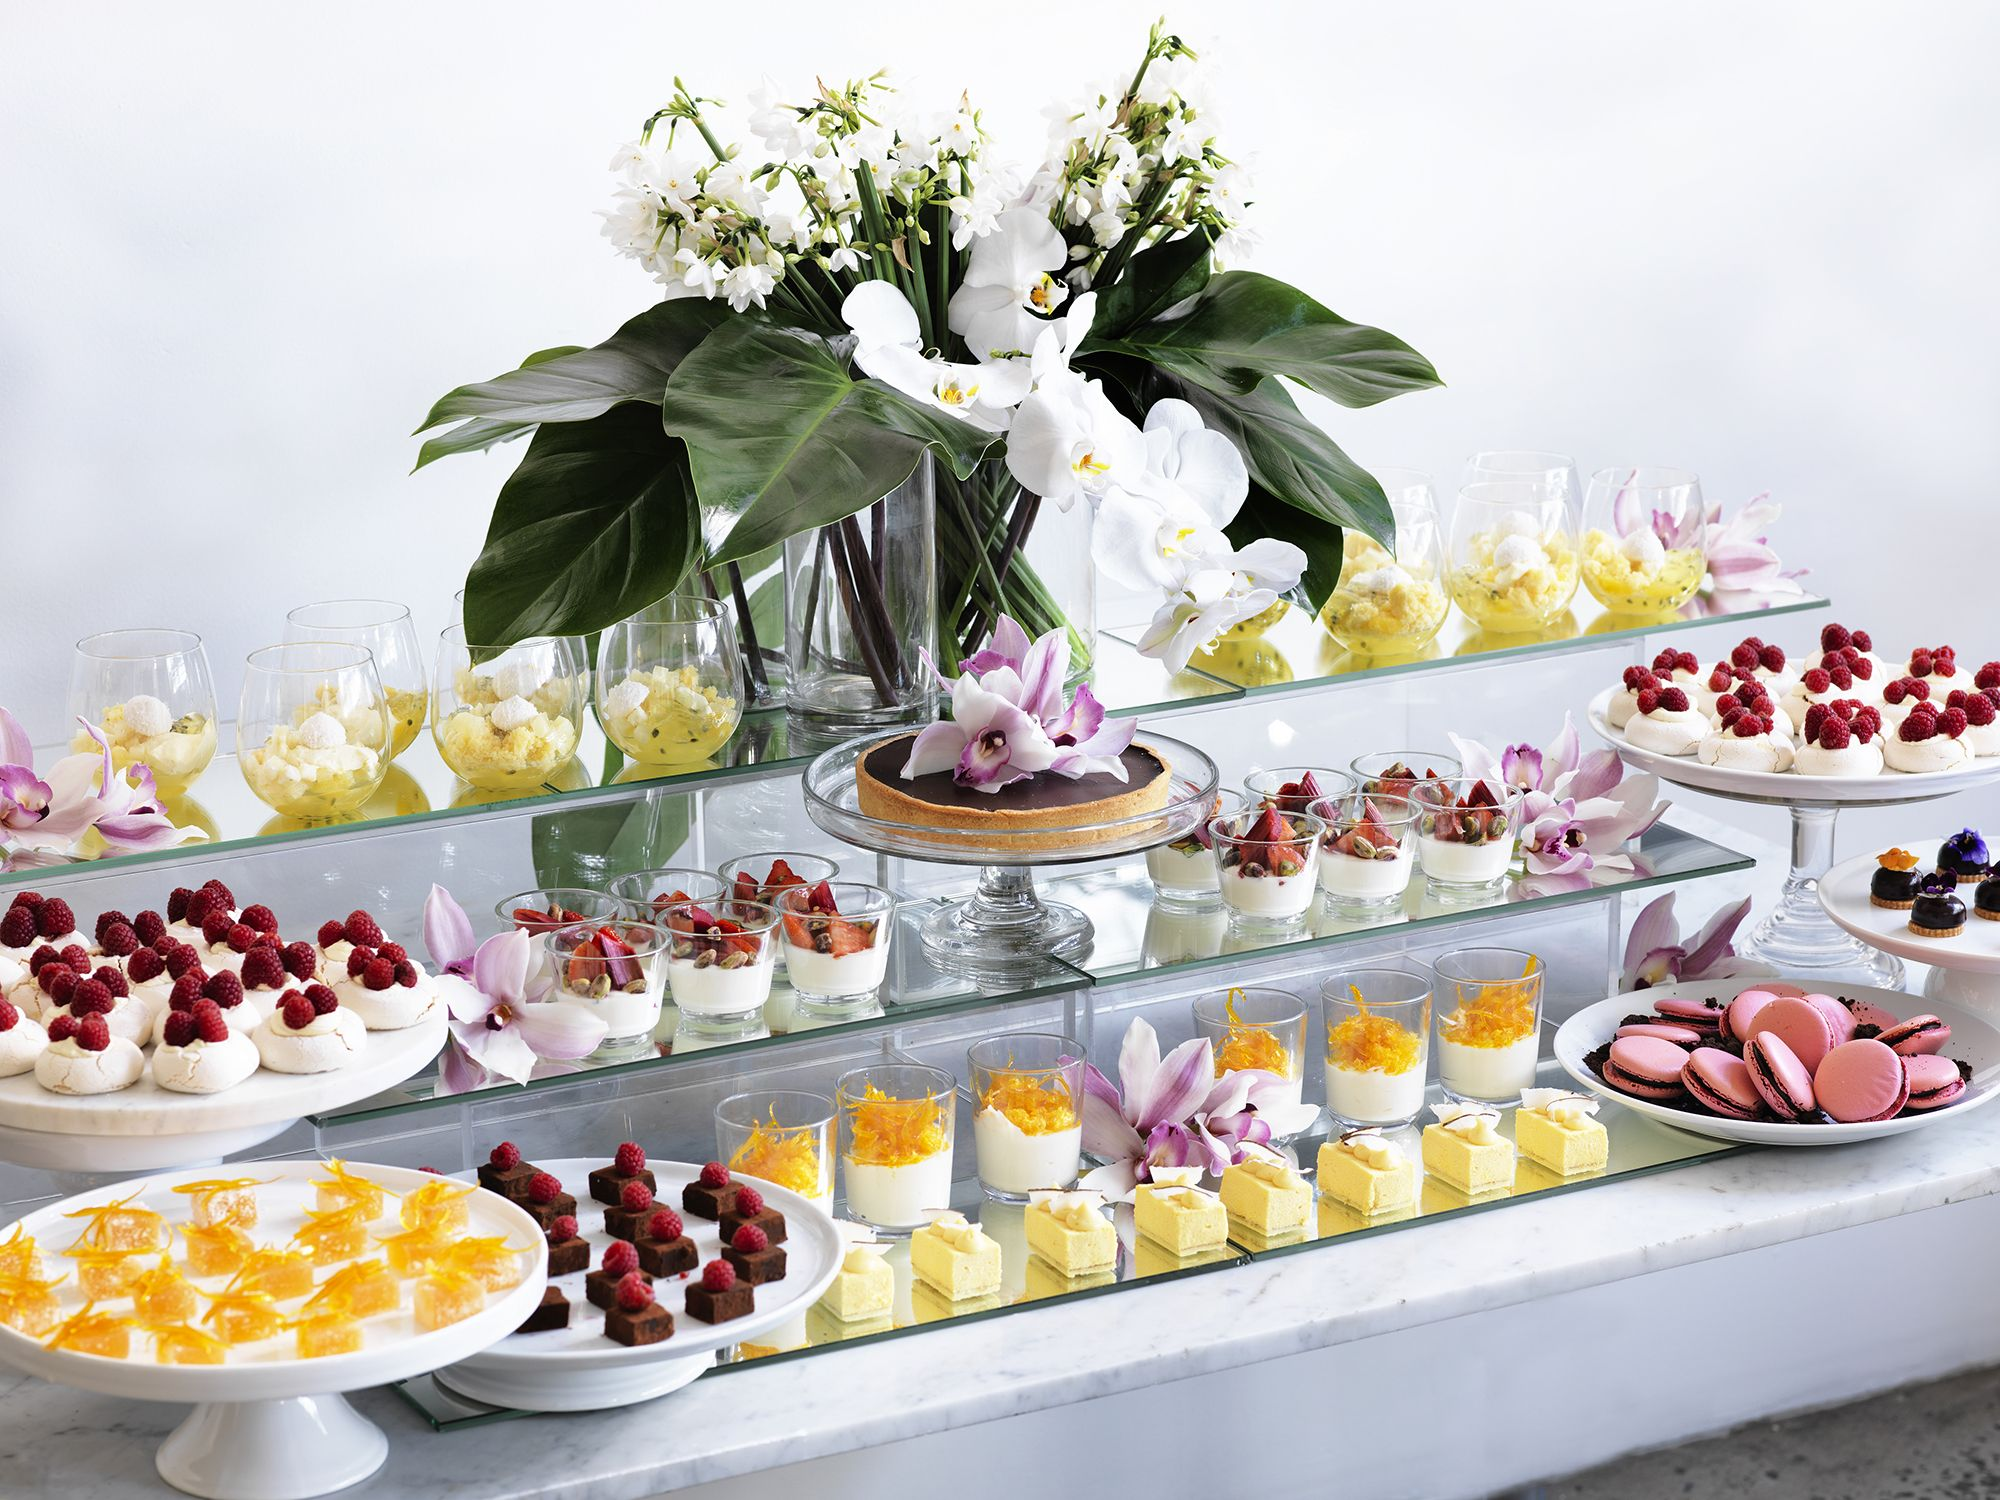 Stupendous Dessert Buffet Table By The Caterer Sydney Christmas Download Free Architecture Designs Scobabritishbridgeorg